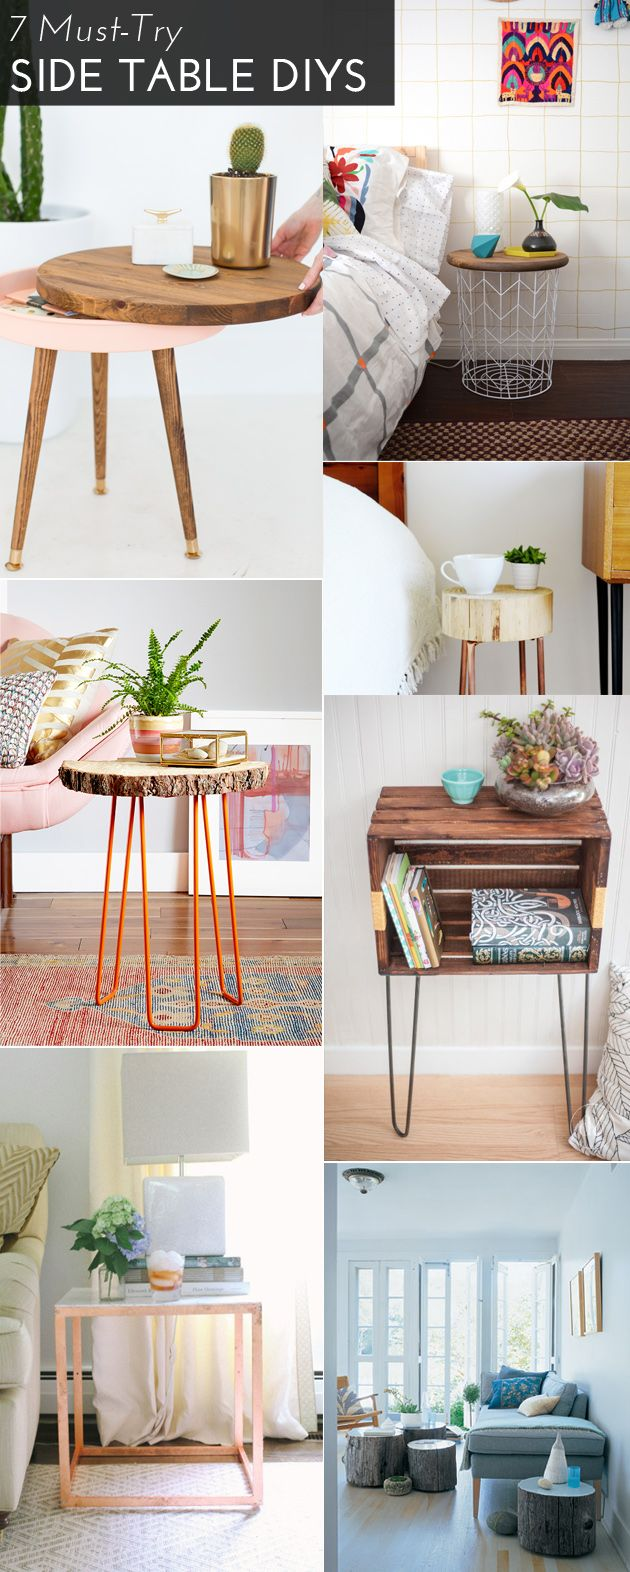 7 Must-Try Side Table DIYS                                                                                                                                                                                 Mehr